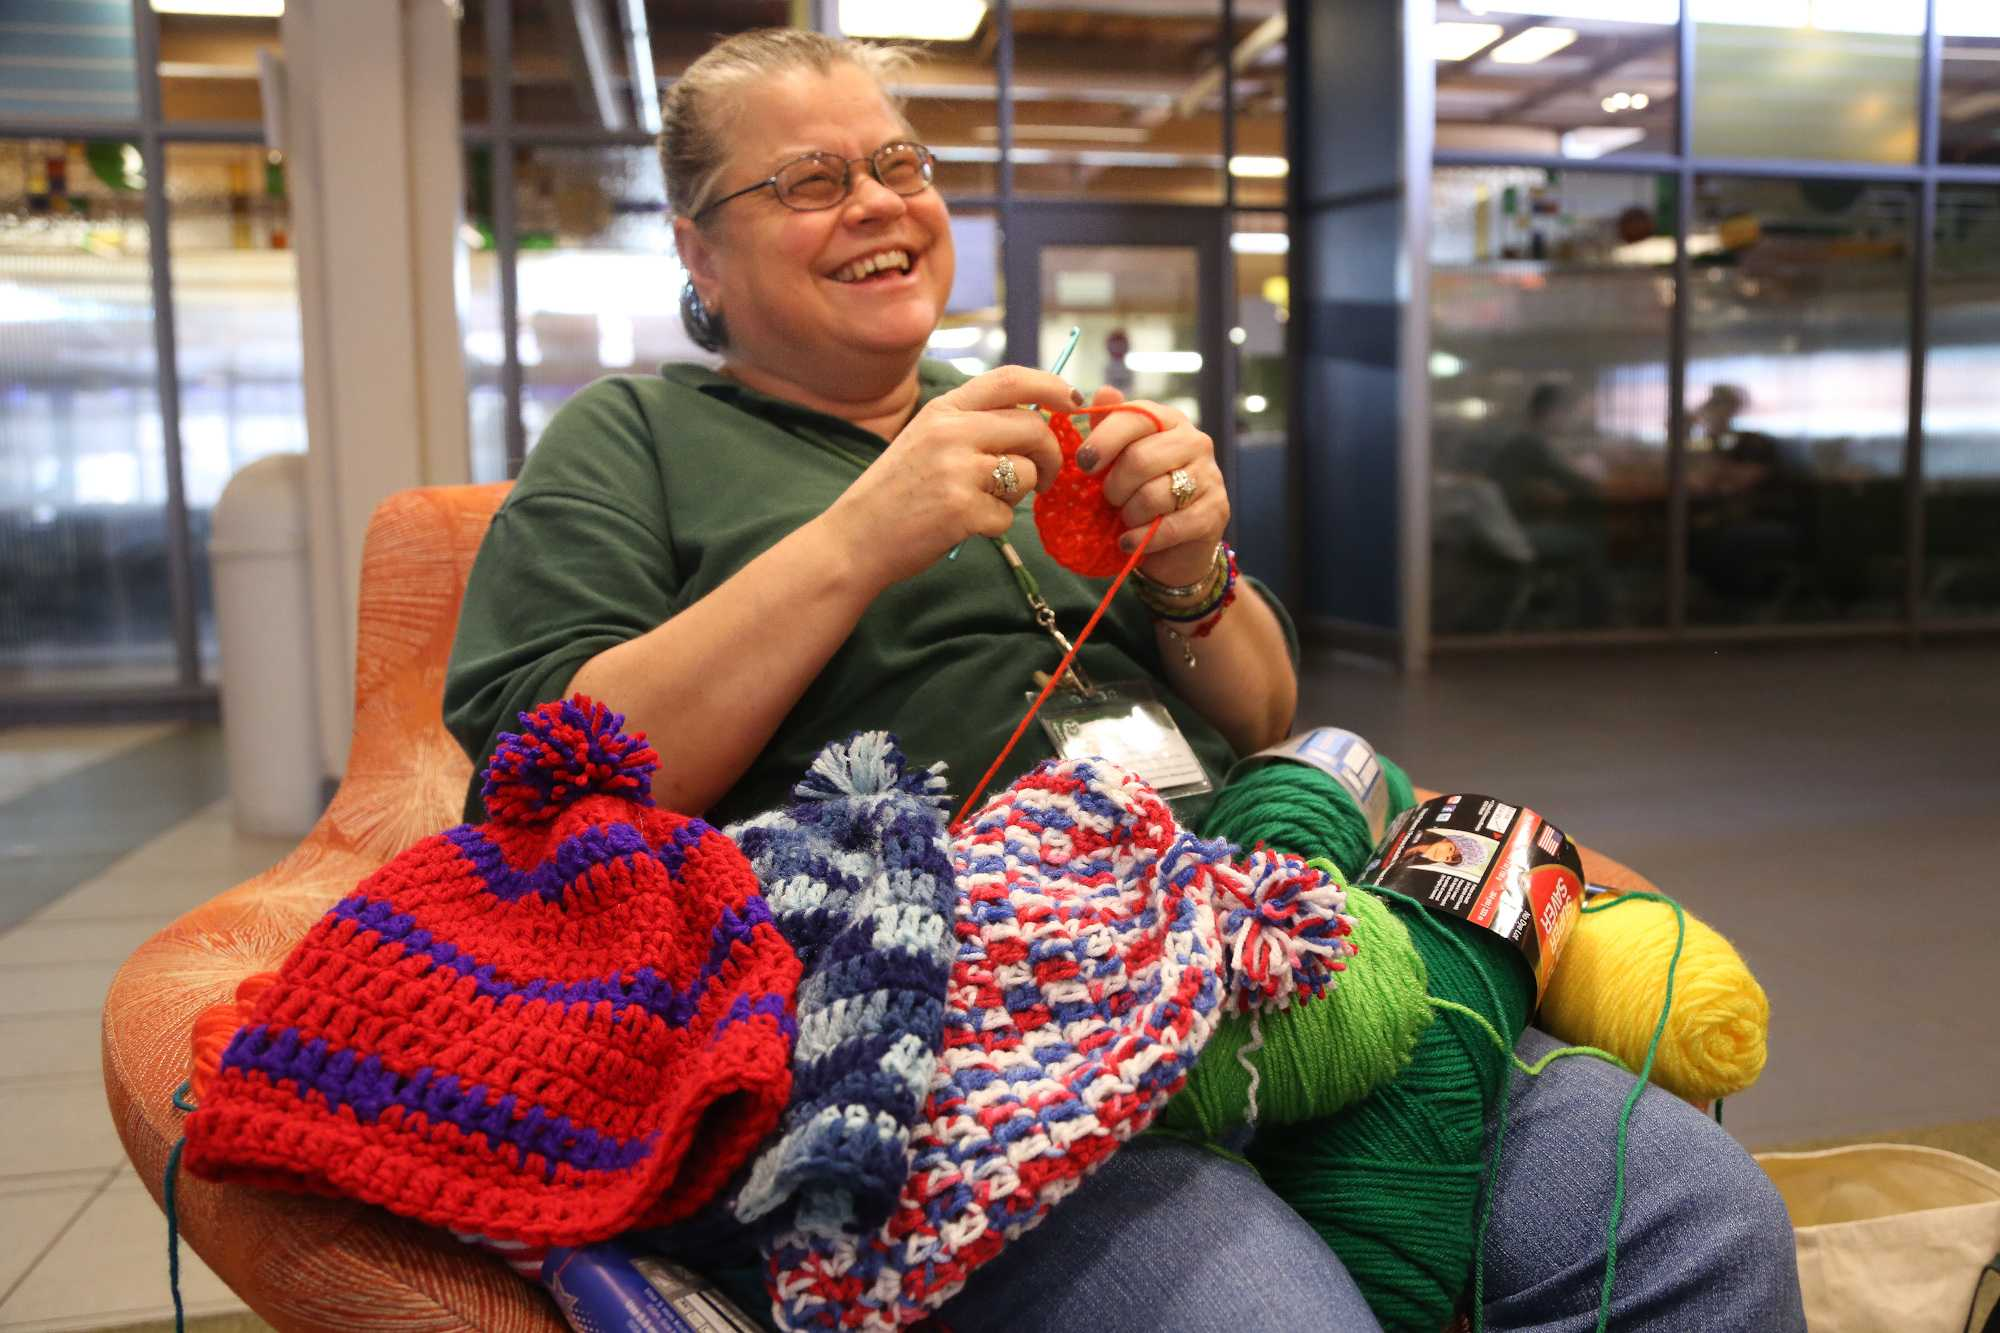 Braiden Hall Environmental Technician Ellen Becker crochets a hat in Braiden last week. Becker, who began crocheting for students 7 years ago, now makes hats for every resident in Braiden as well as Tony Frank and other prominent figures on campus.